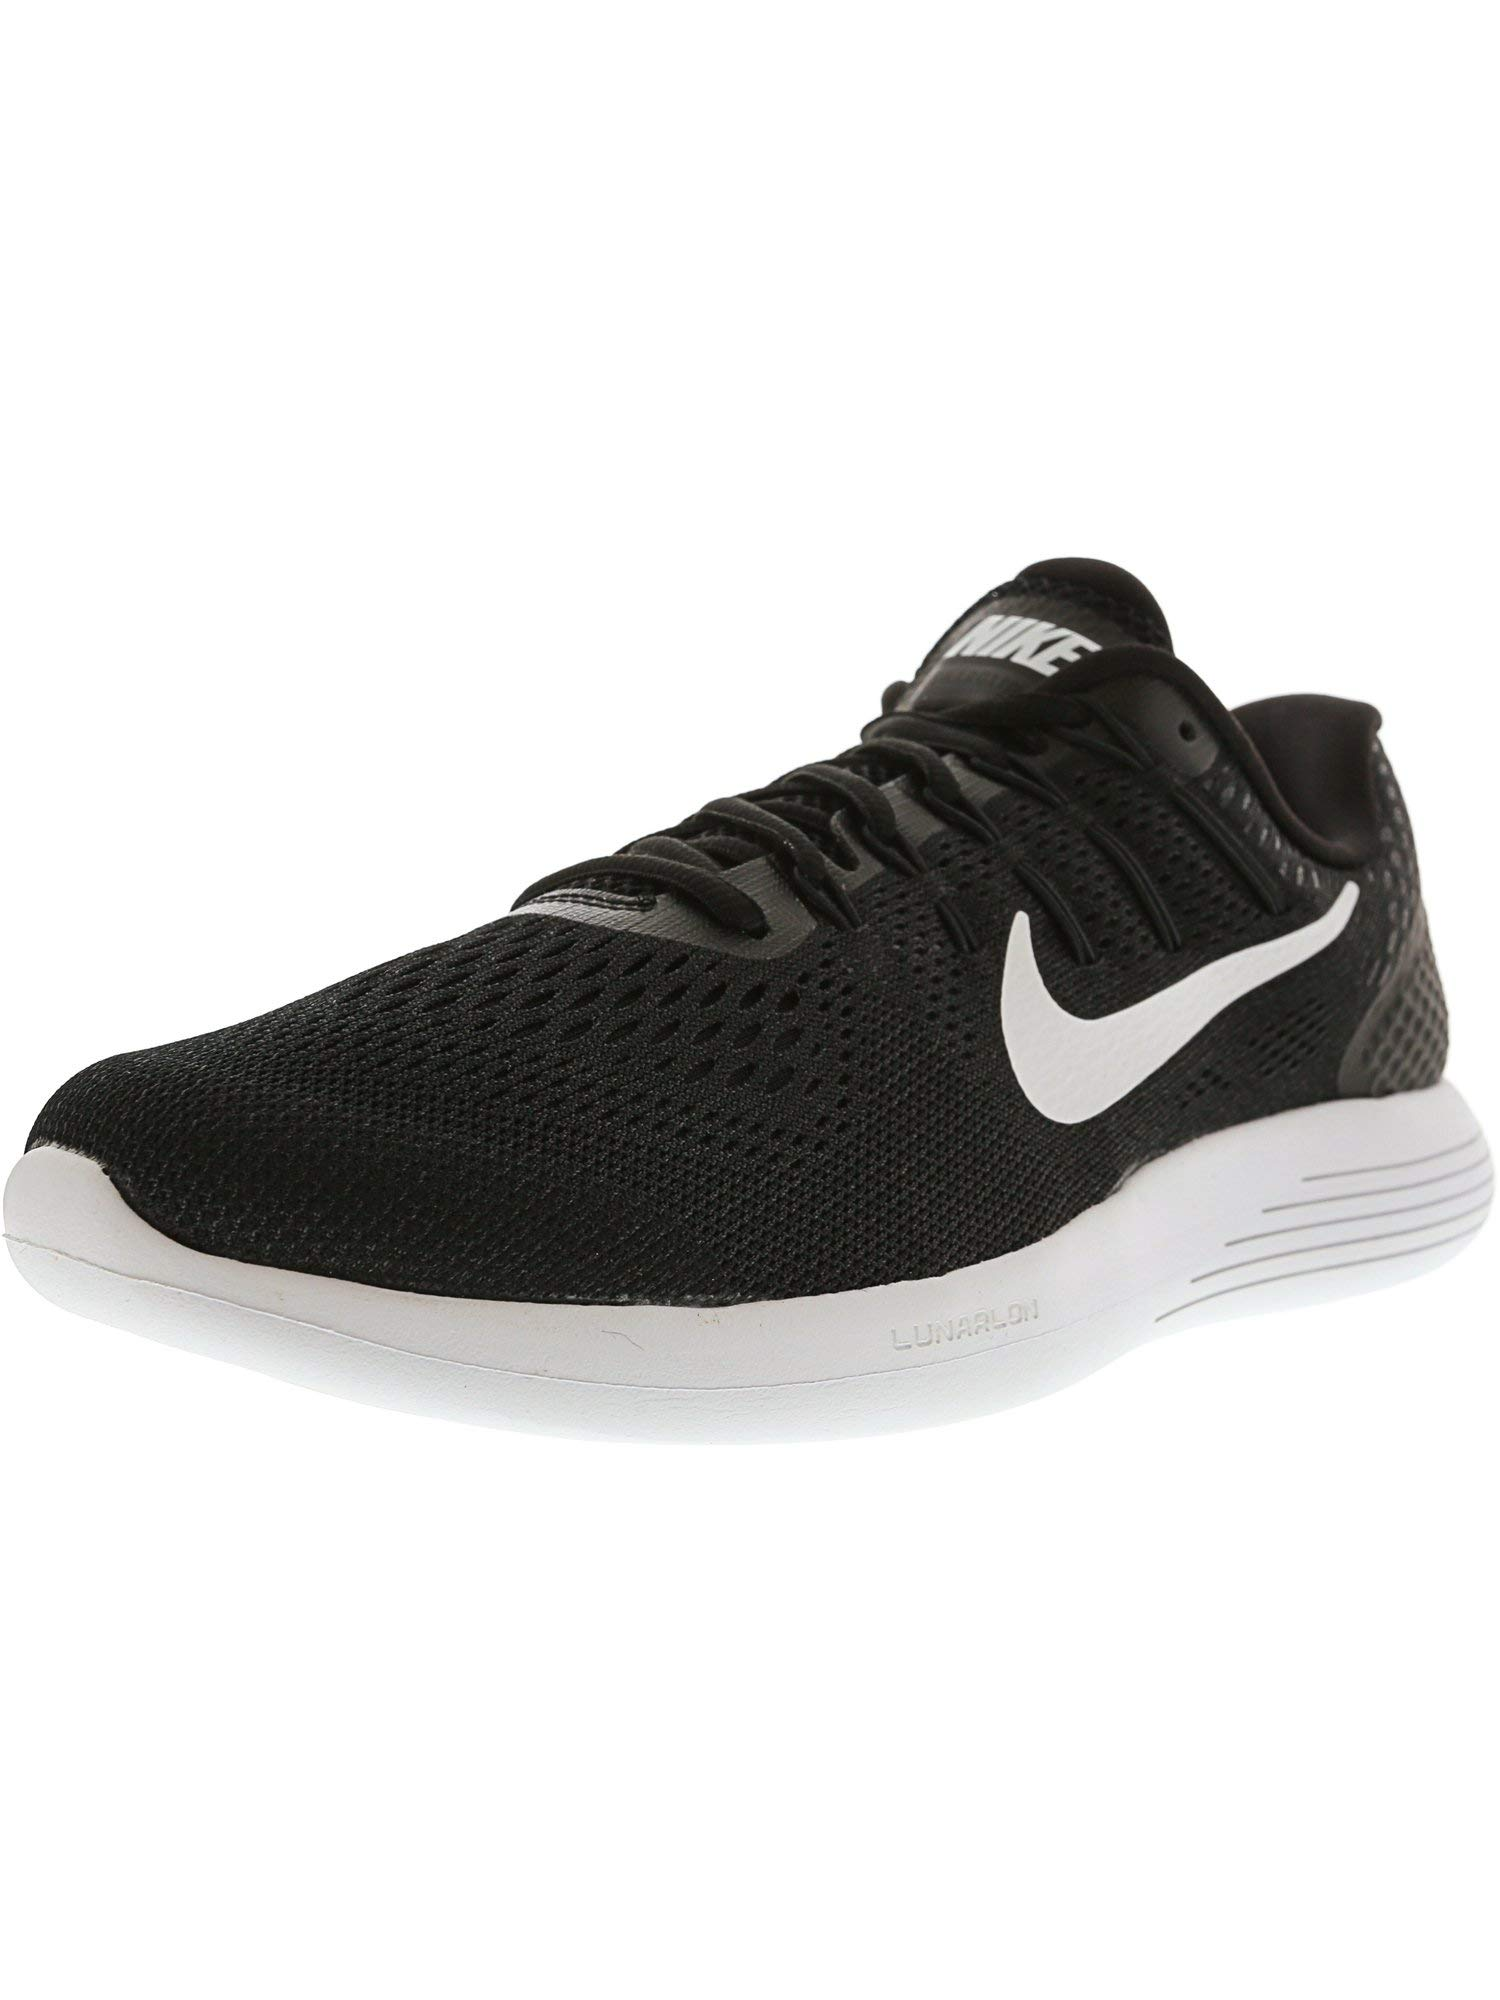 Galleon - Nike Men s Lunarglide 8 Running Shoe Black White Anthracite Size  10.5 M US 2d525aebe